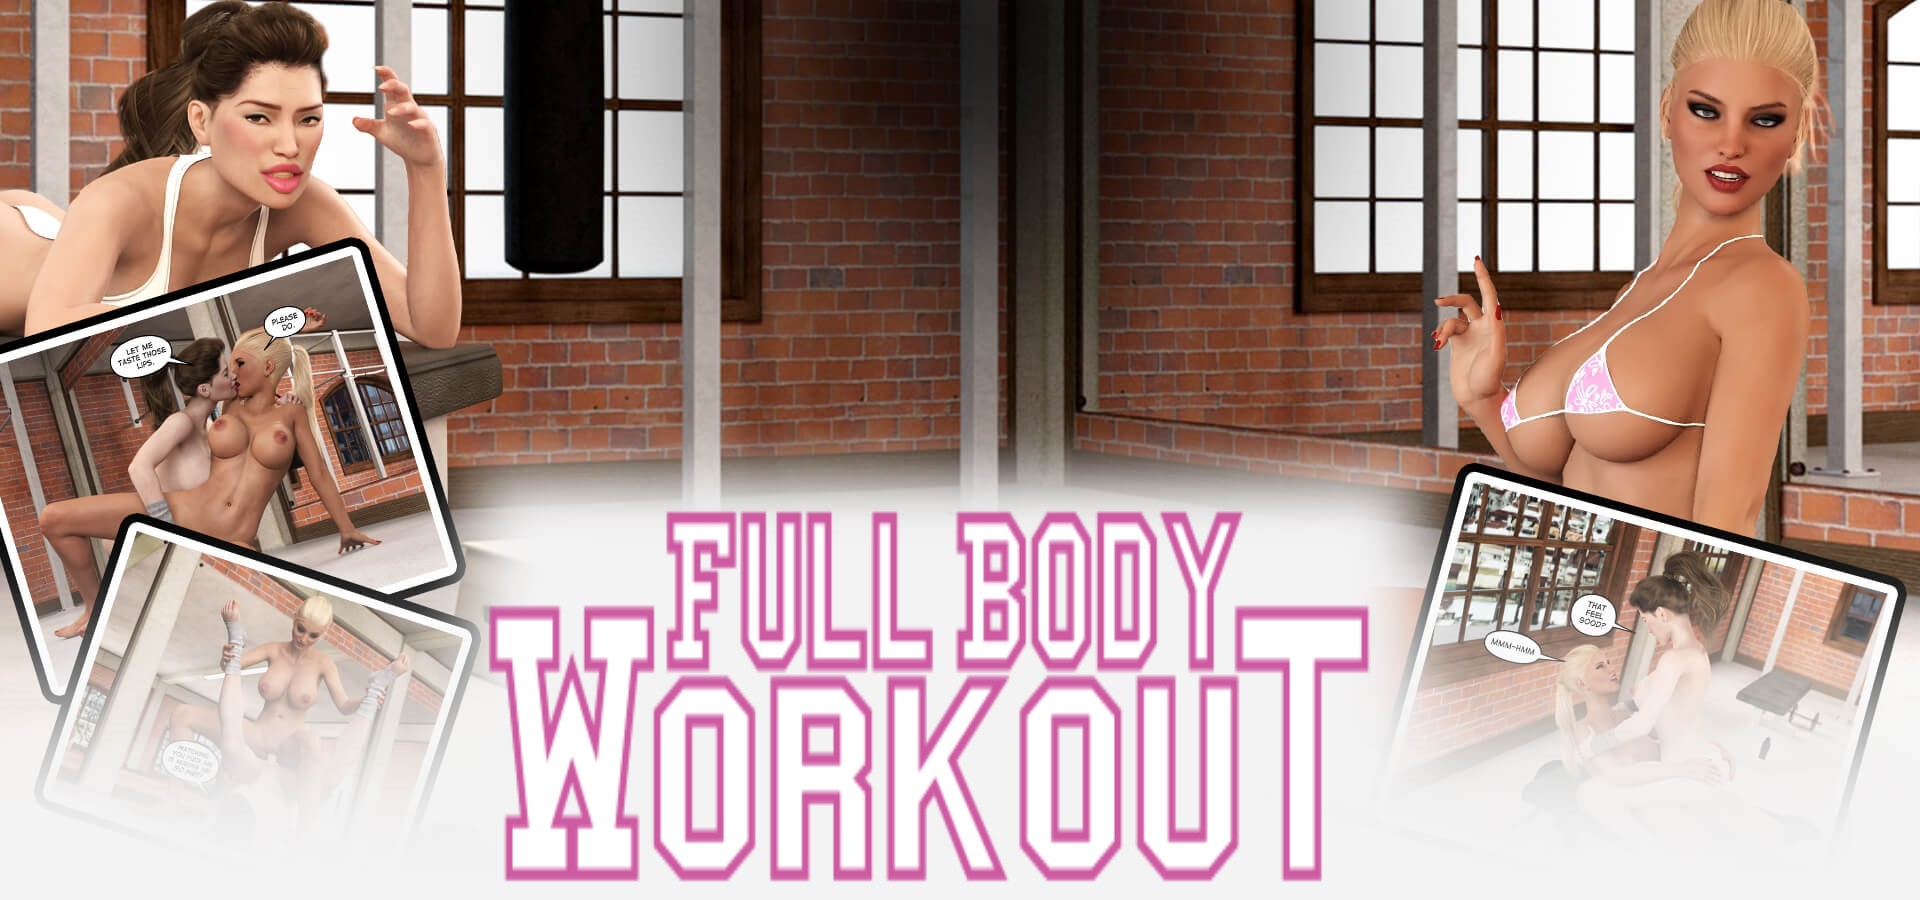 Full Body Workout poster